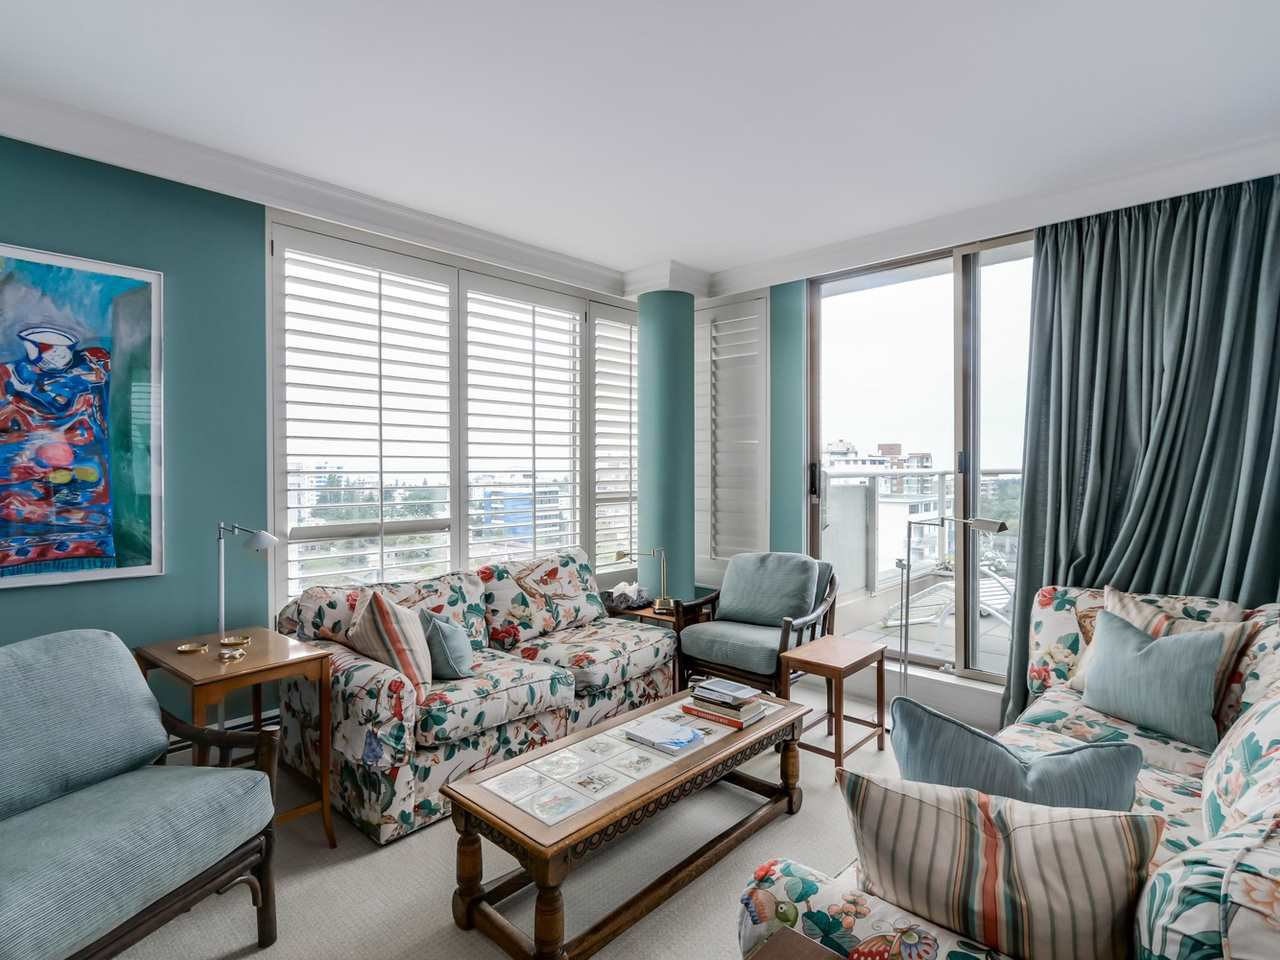 """Photo 10: Photos: PH1 2108 W 38TH Avenue in Vancouver: Kerrisdale Condo for sale in """"THE WILSHIRE"""" (Vancouver West)  : MLS®# R2072443"""